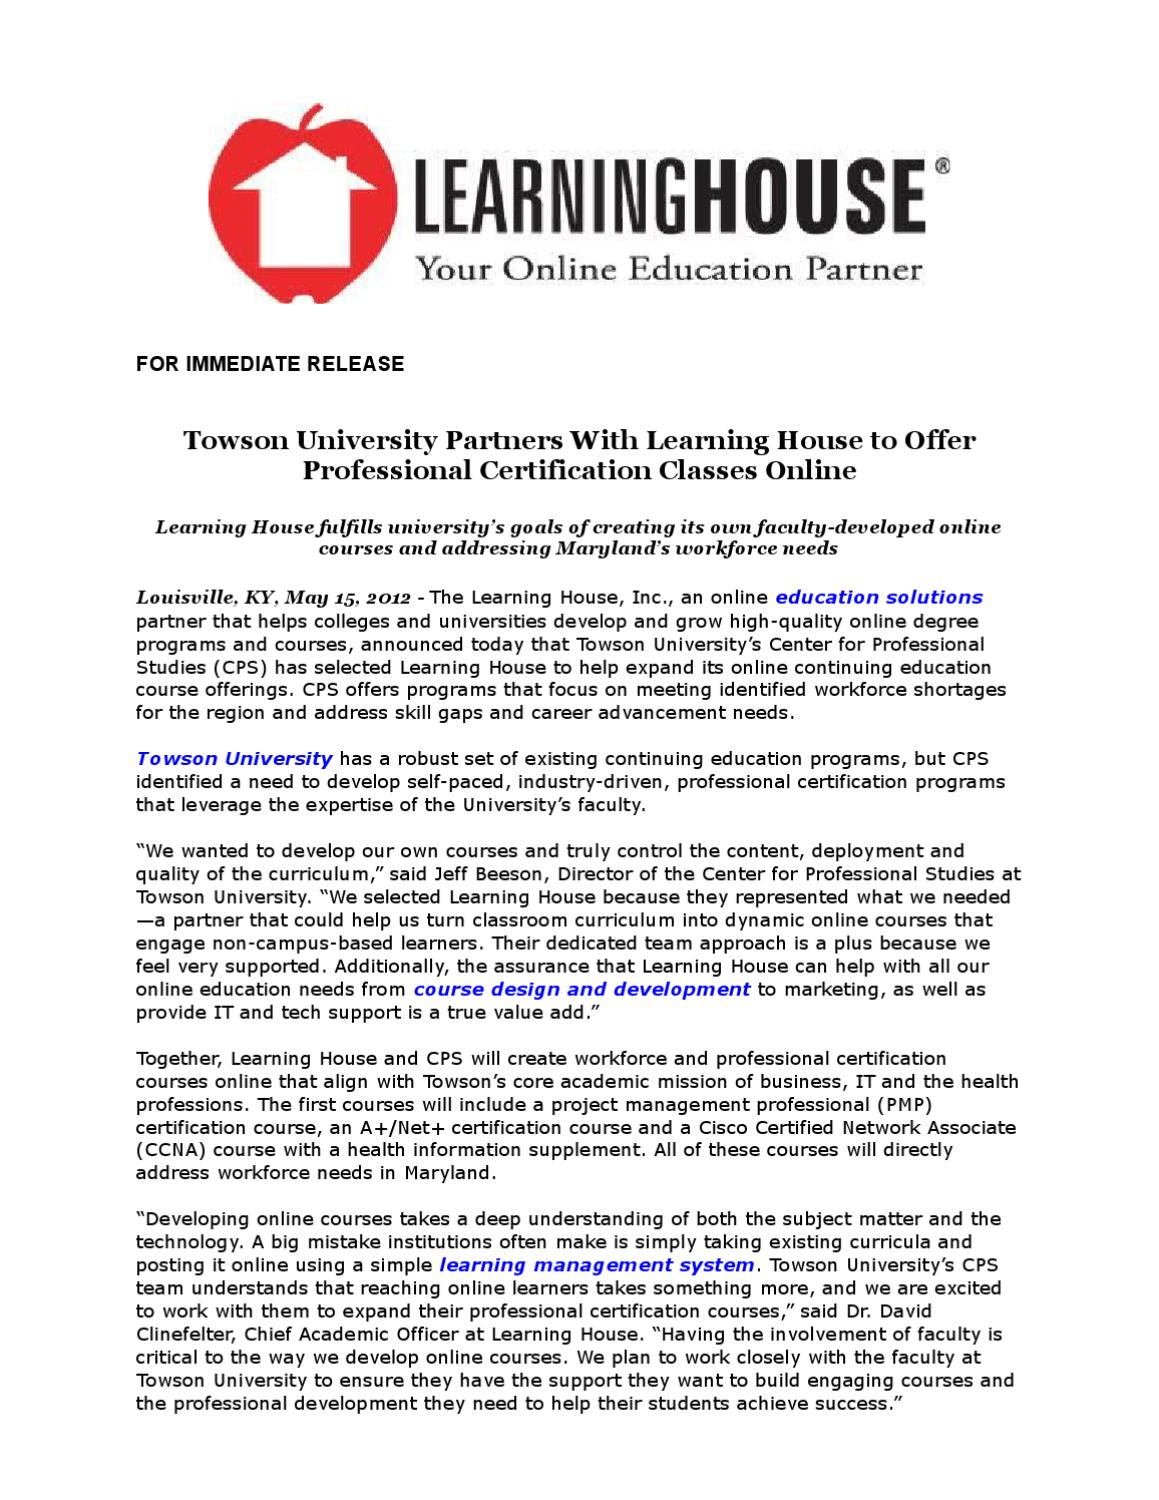 Towson University Partners With Learning House To Offer Professional